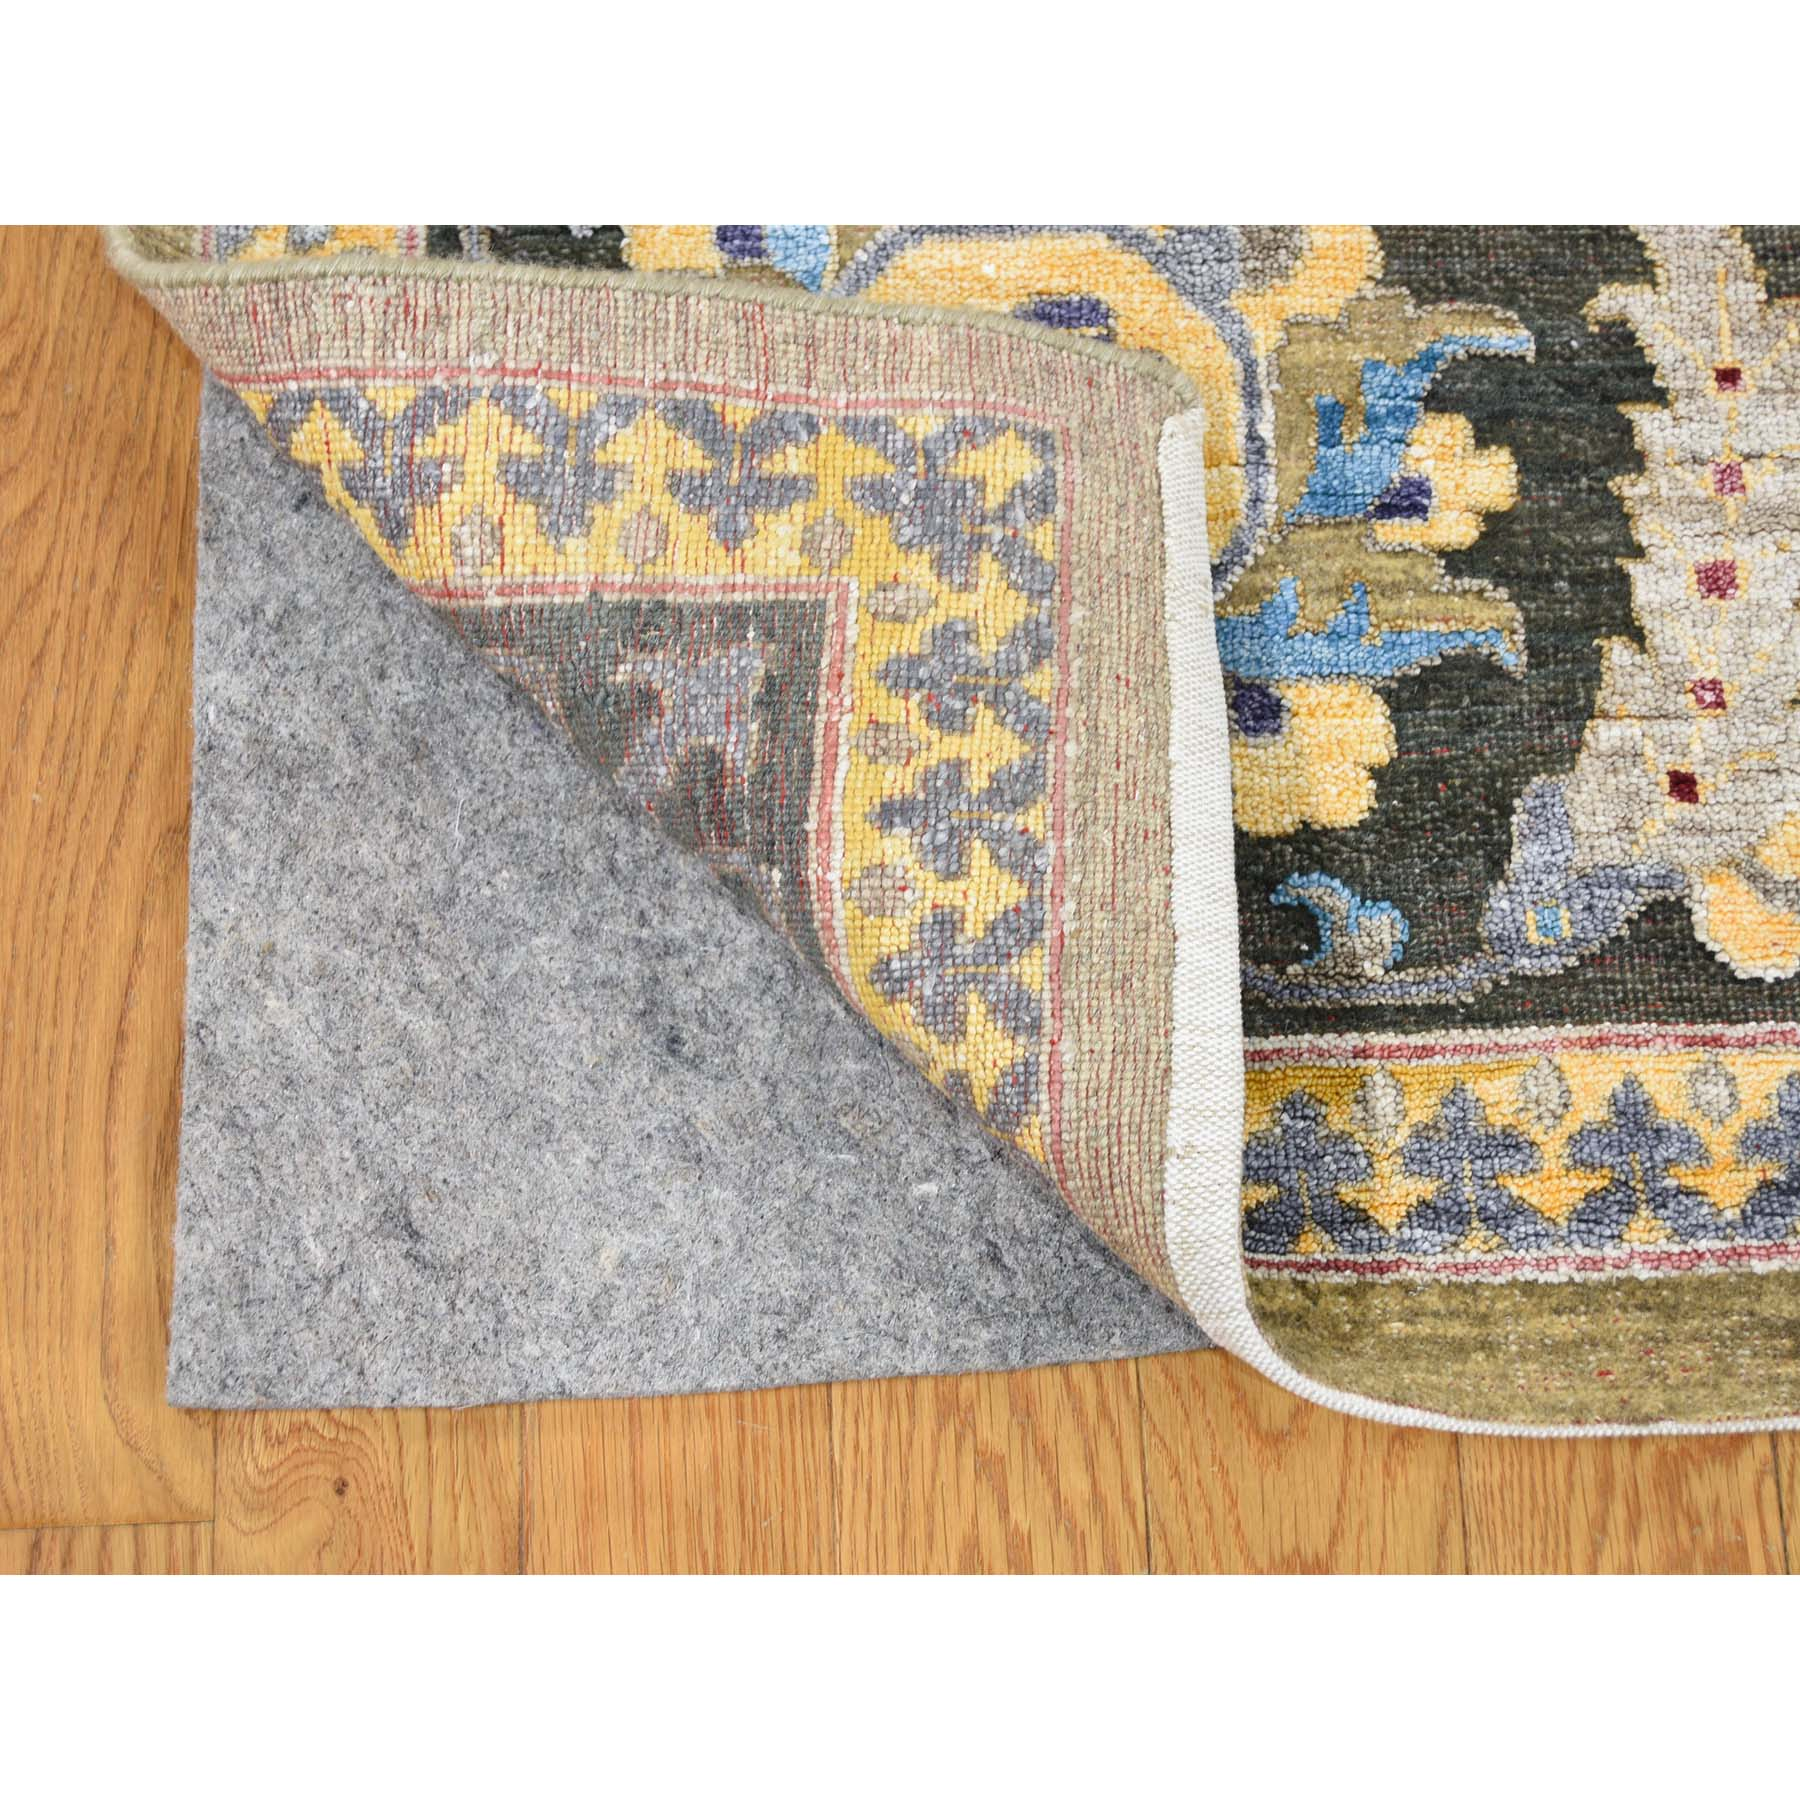 10-x14- Hand Knotted Arts And Crafts Design Silk with Oxidized Wool Oriental Rug